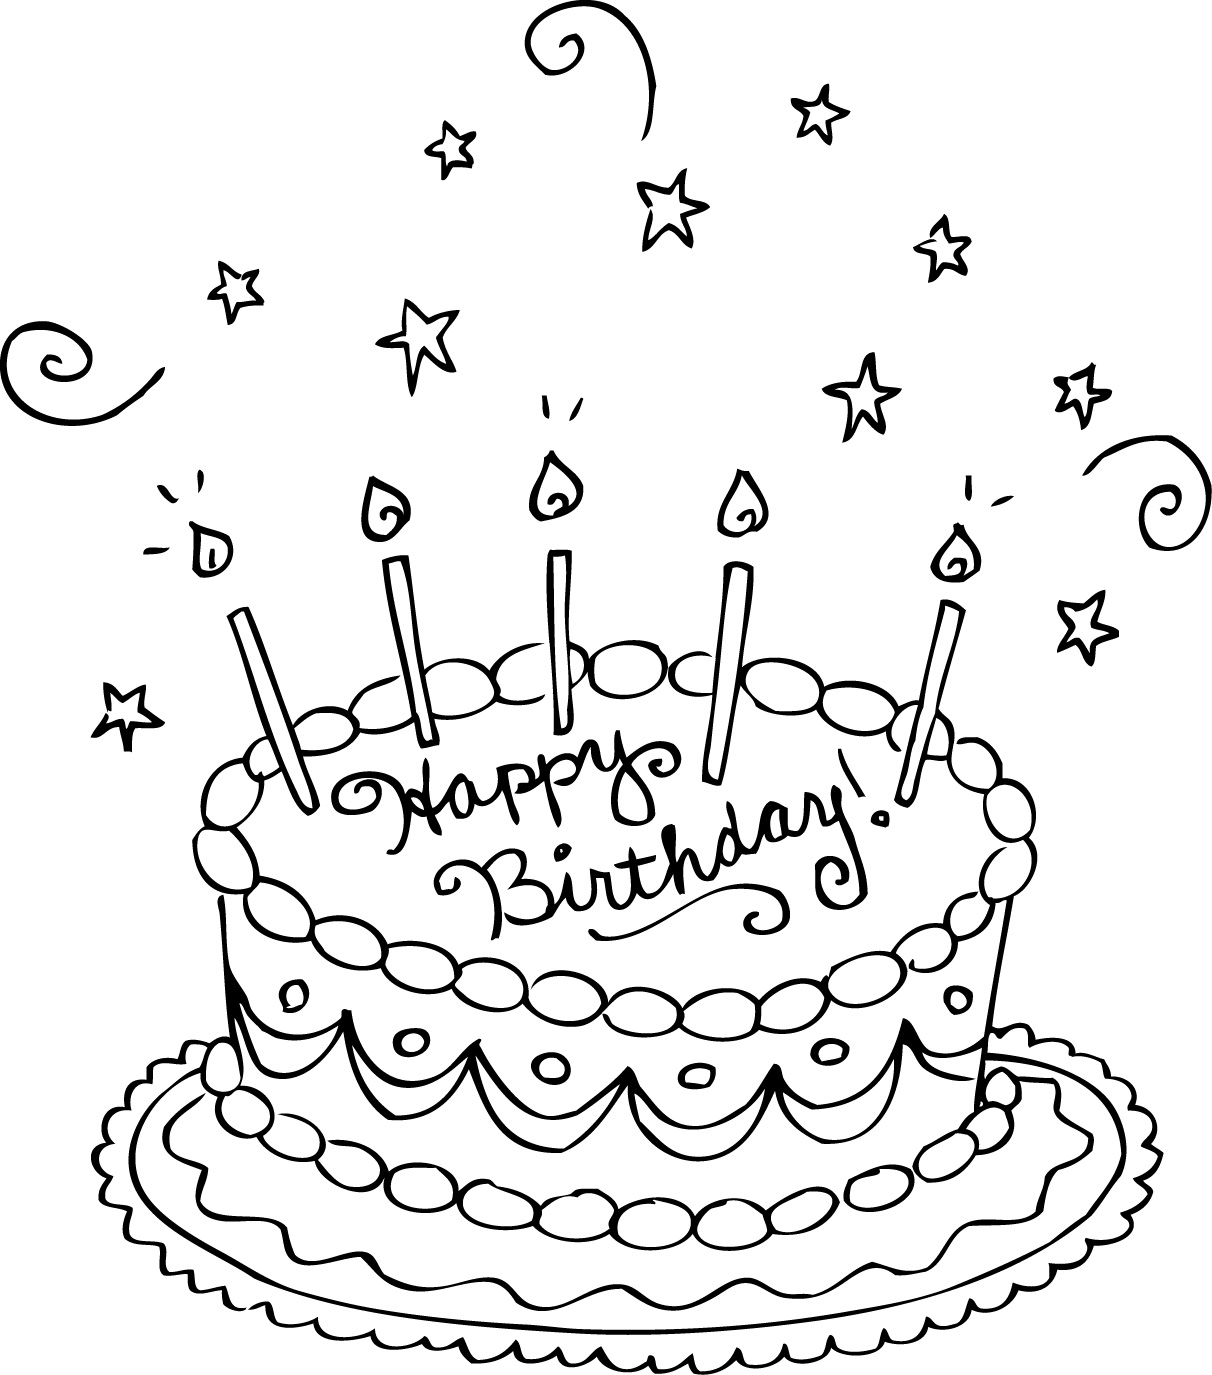 cake printables for coloring birthday cake color page in 2020 birthday cake with for cake printables coloring